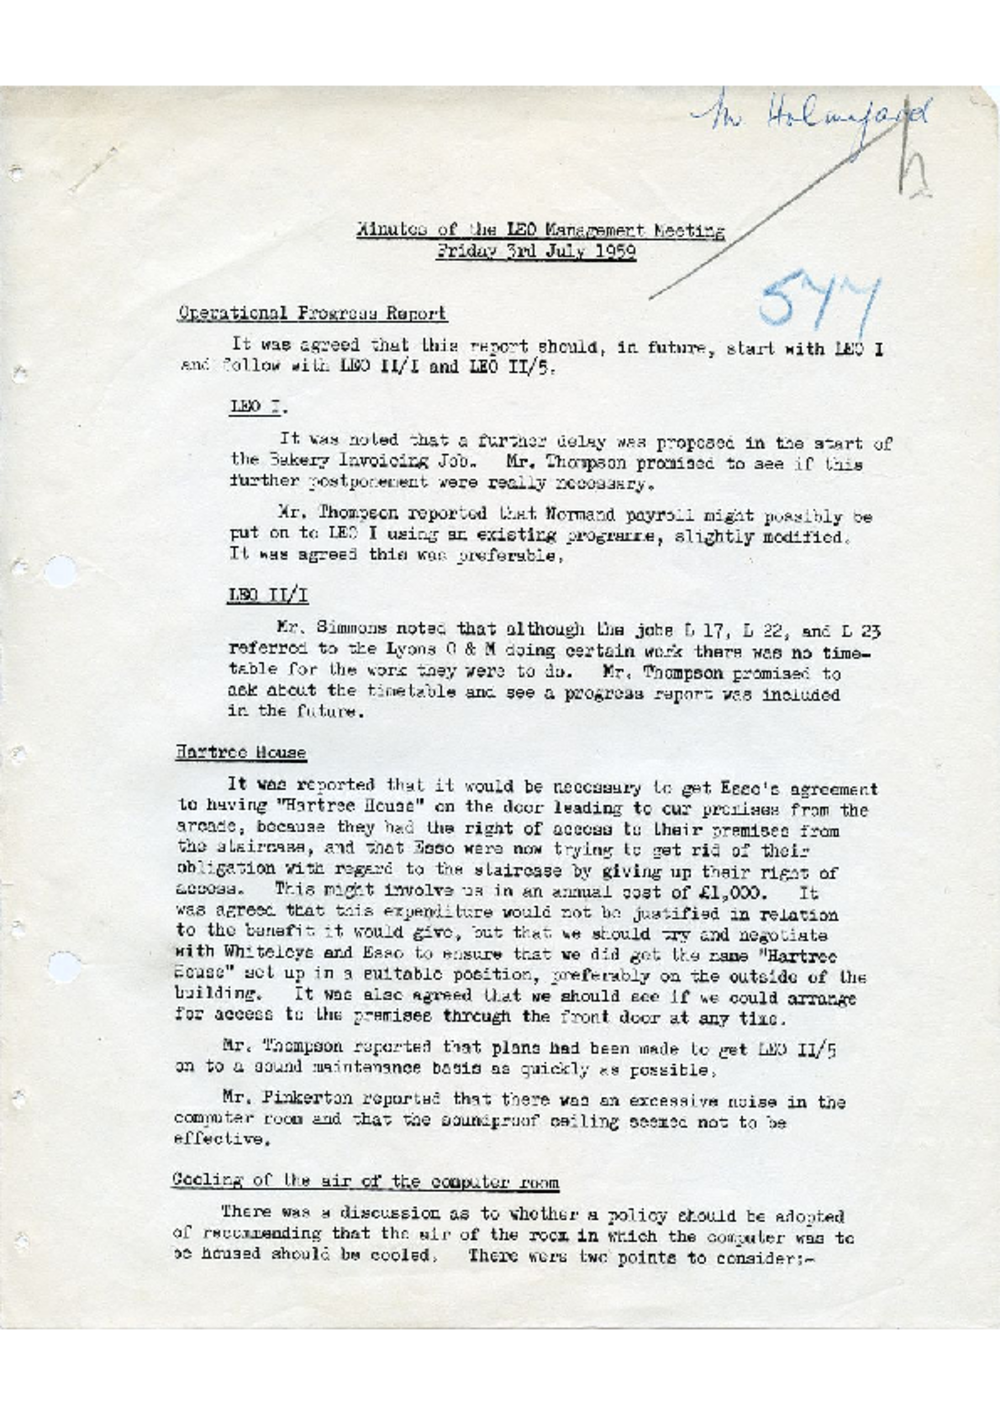 Article: 54922 LEO Management Meeting, 3/7/1959